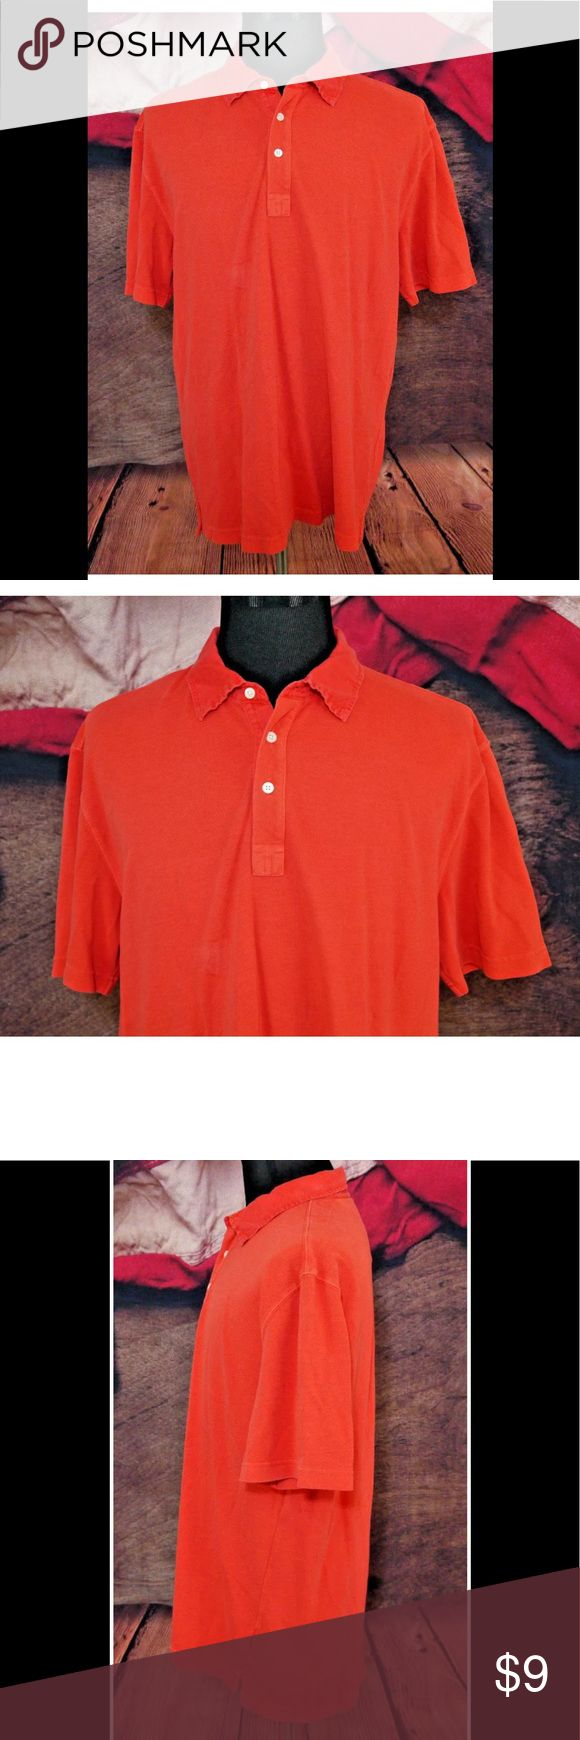 """Robert Talbott Carmel XL Red Orange Polo Shirt Pre-Owned in Excellent Condition Robert Talbott Carmel XL Red Orange Cotton Polo Shirt EUC   Size: XL  Material: 100% Cotton  Color: Red Orange  Measurements: Chest: 23"""" / Sleeve: 10"""" / Shoulders: 22"""" / Length: 29"""" Robert Talbott Shirts Polos"""